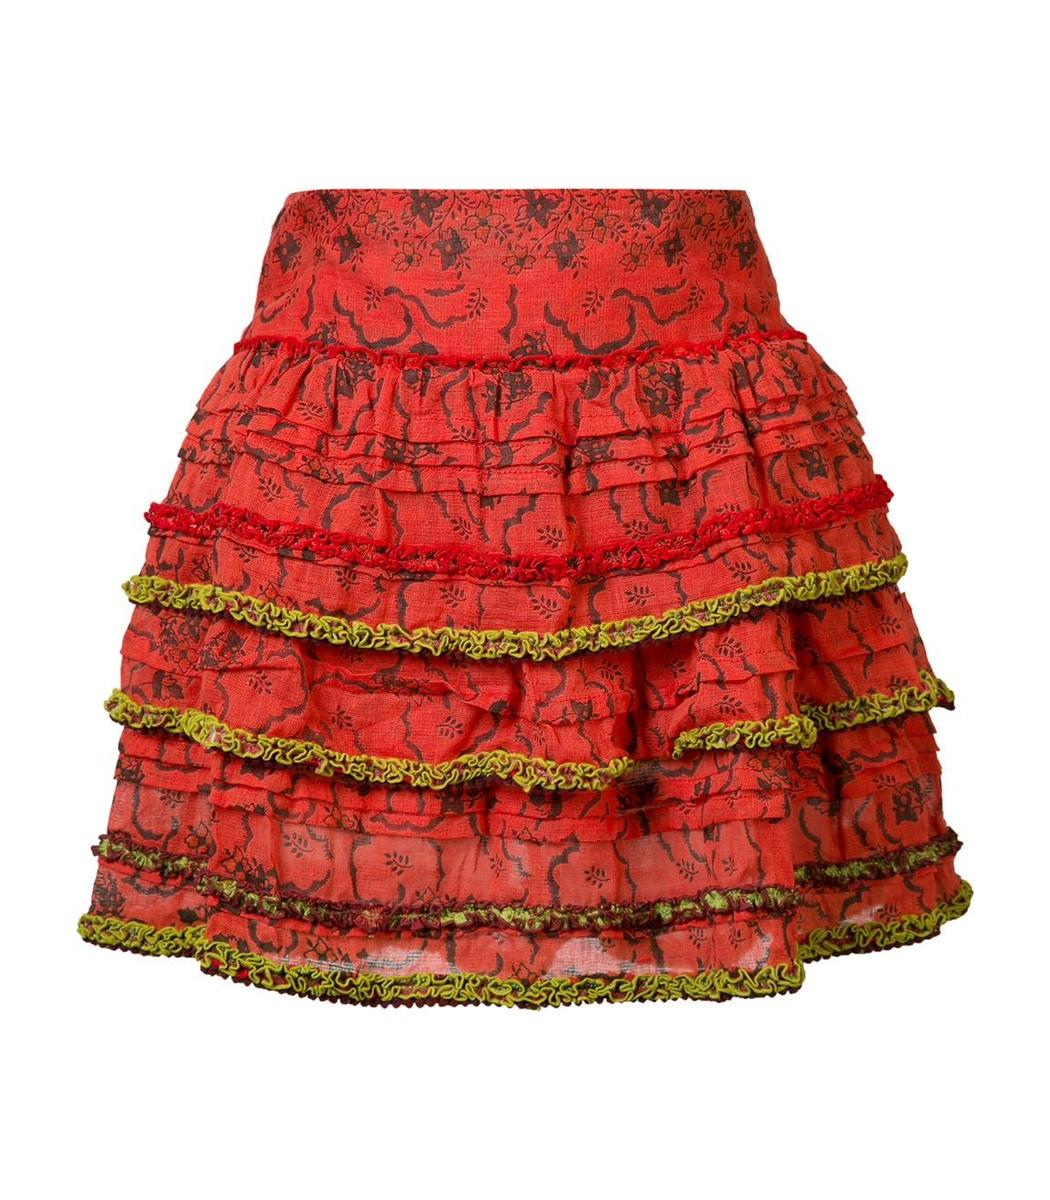 Poupette St Barth Bibi Mini Skirt - Red/Black Cotton Skirt